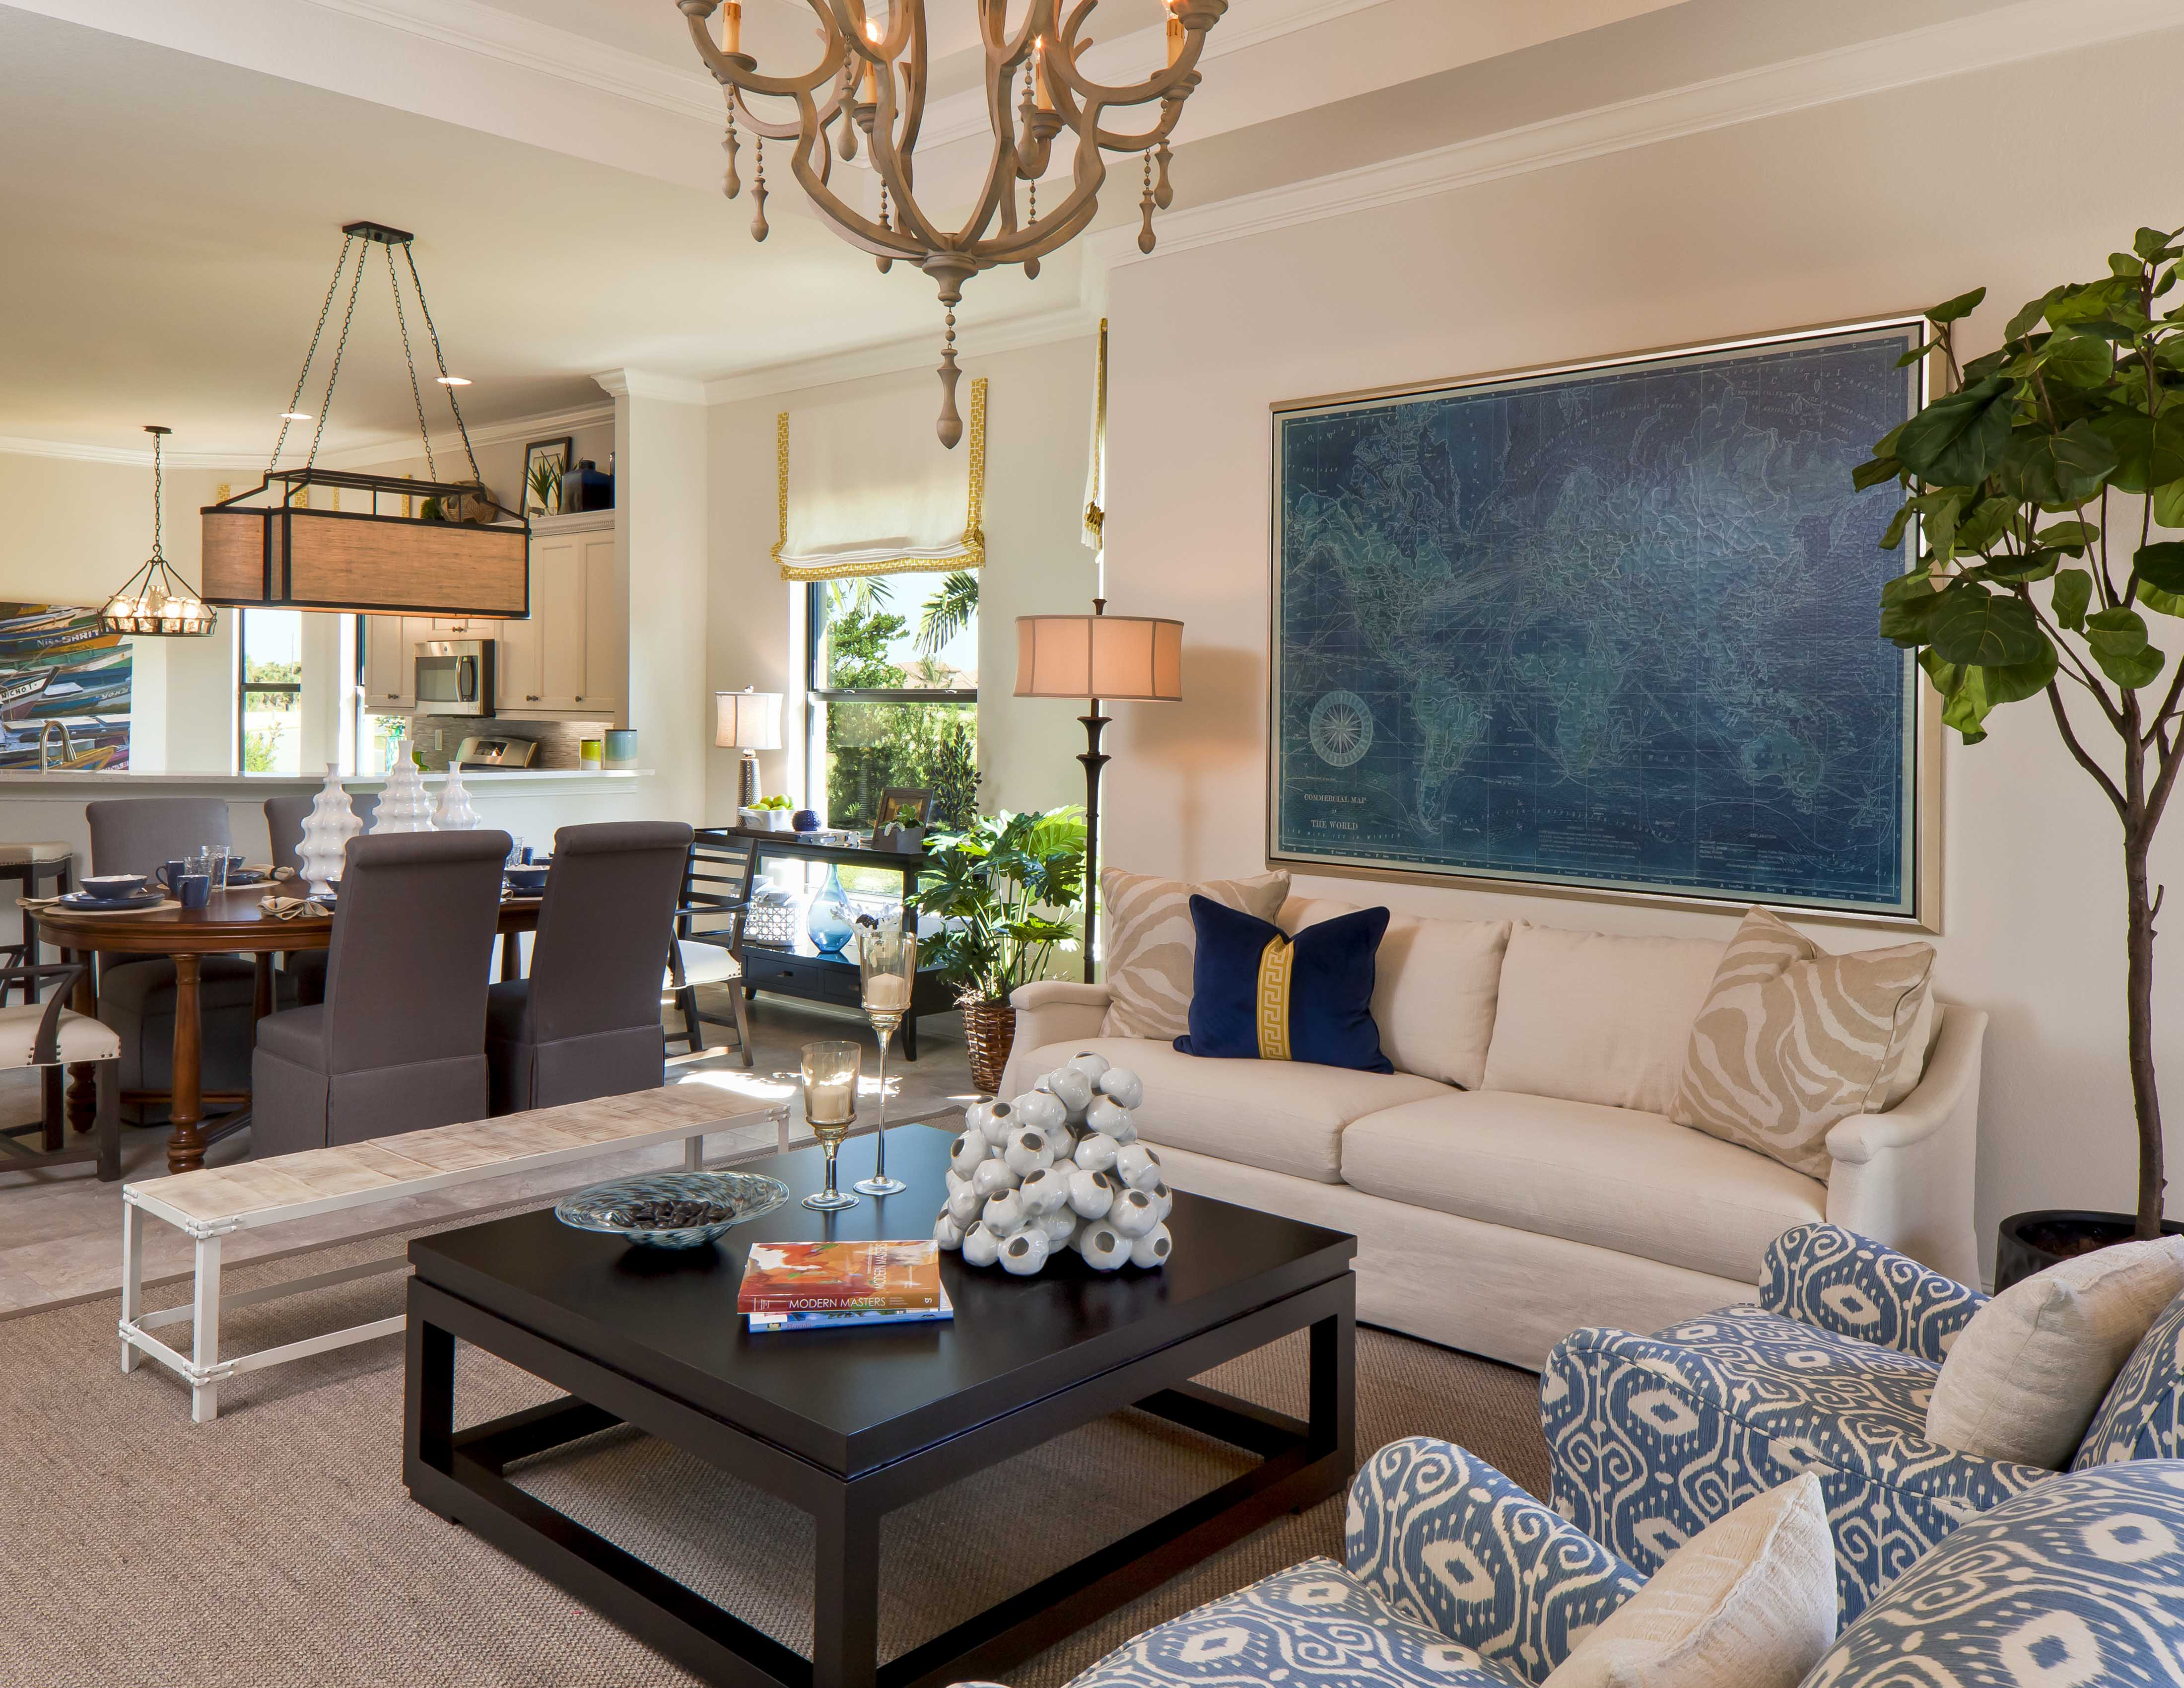 Beasley Henley Interior Design S Features Key To Creating High Impact Model Home